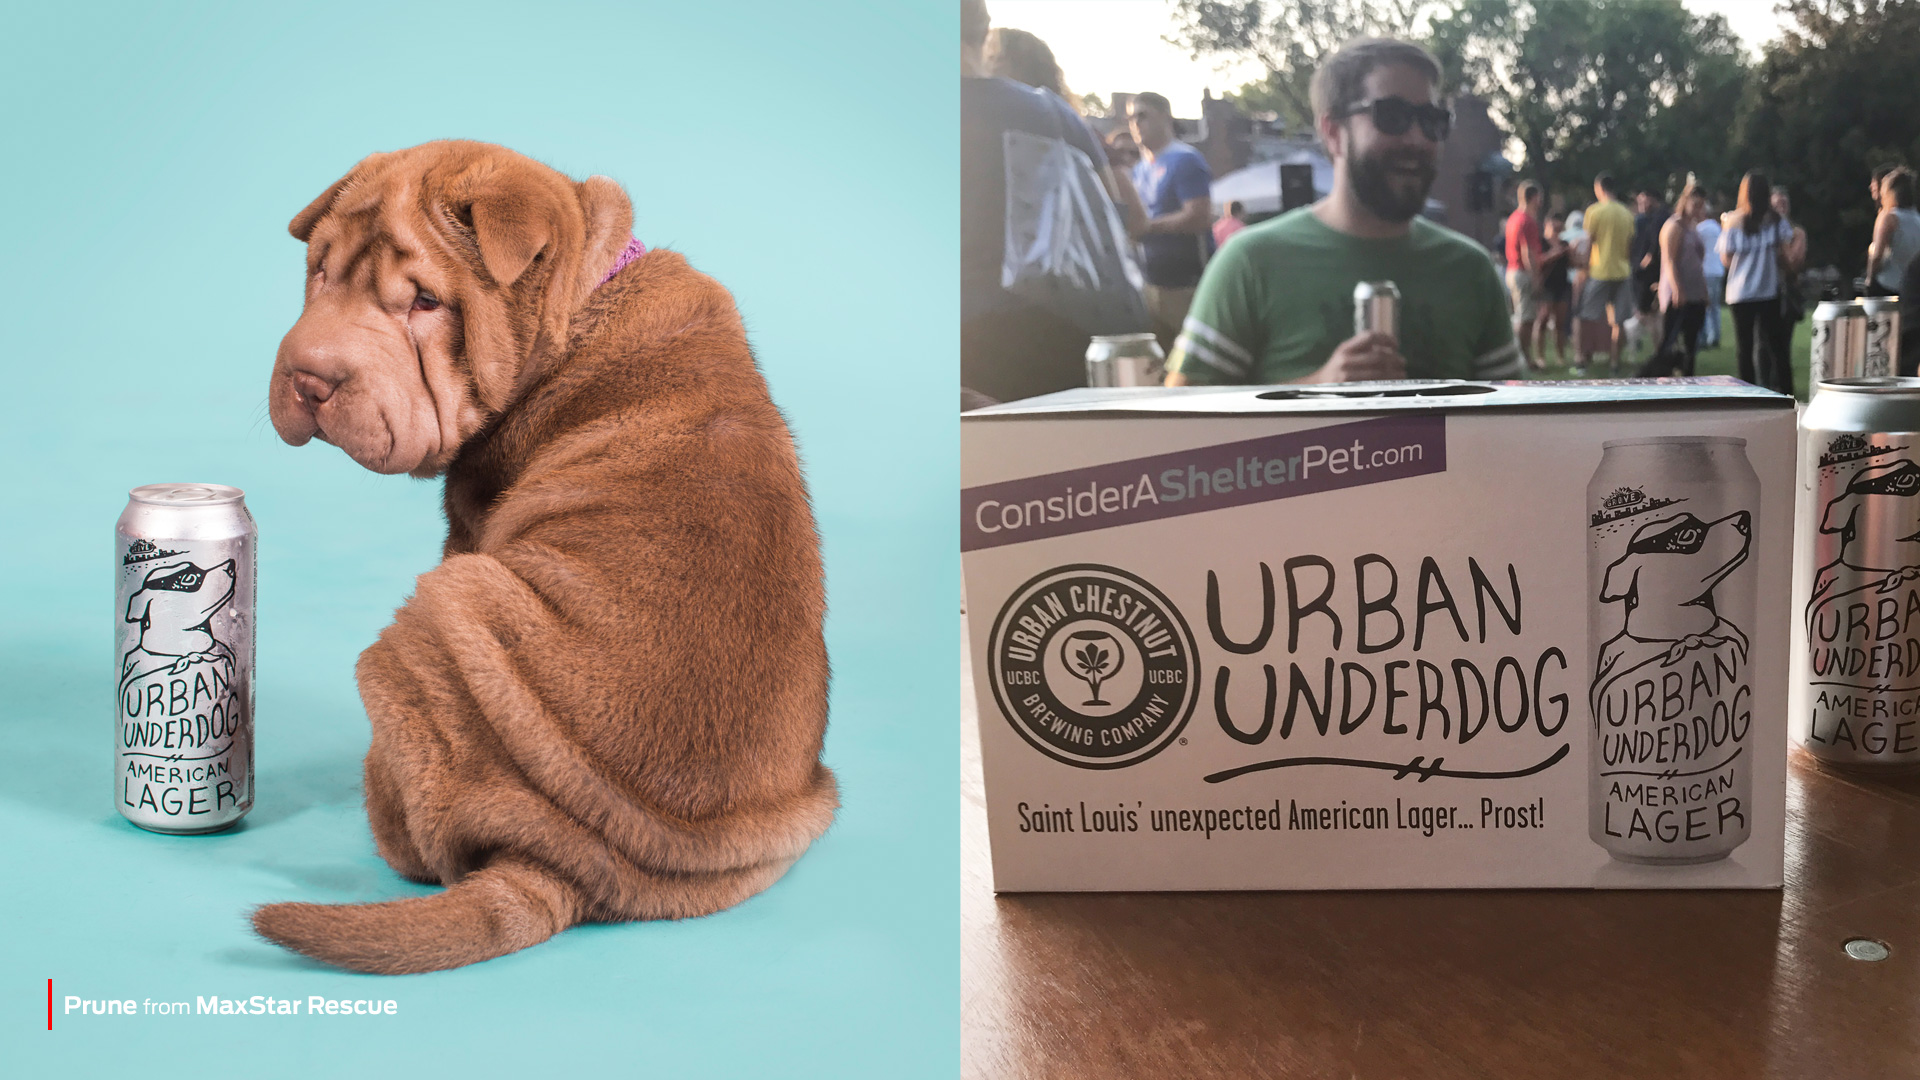 Urban & Purina partnership - Purina branding